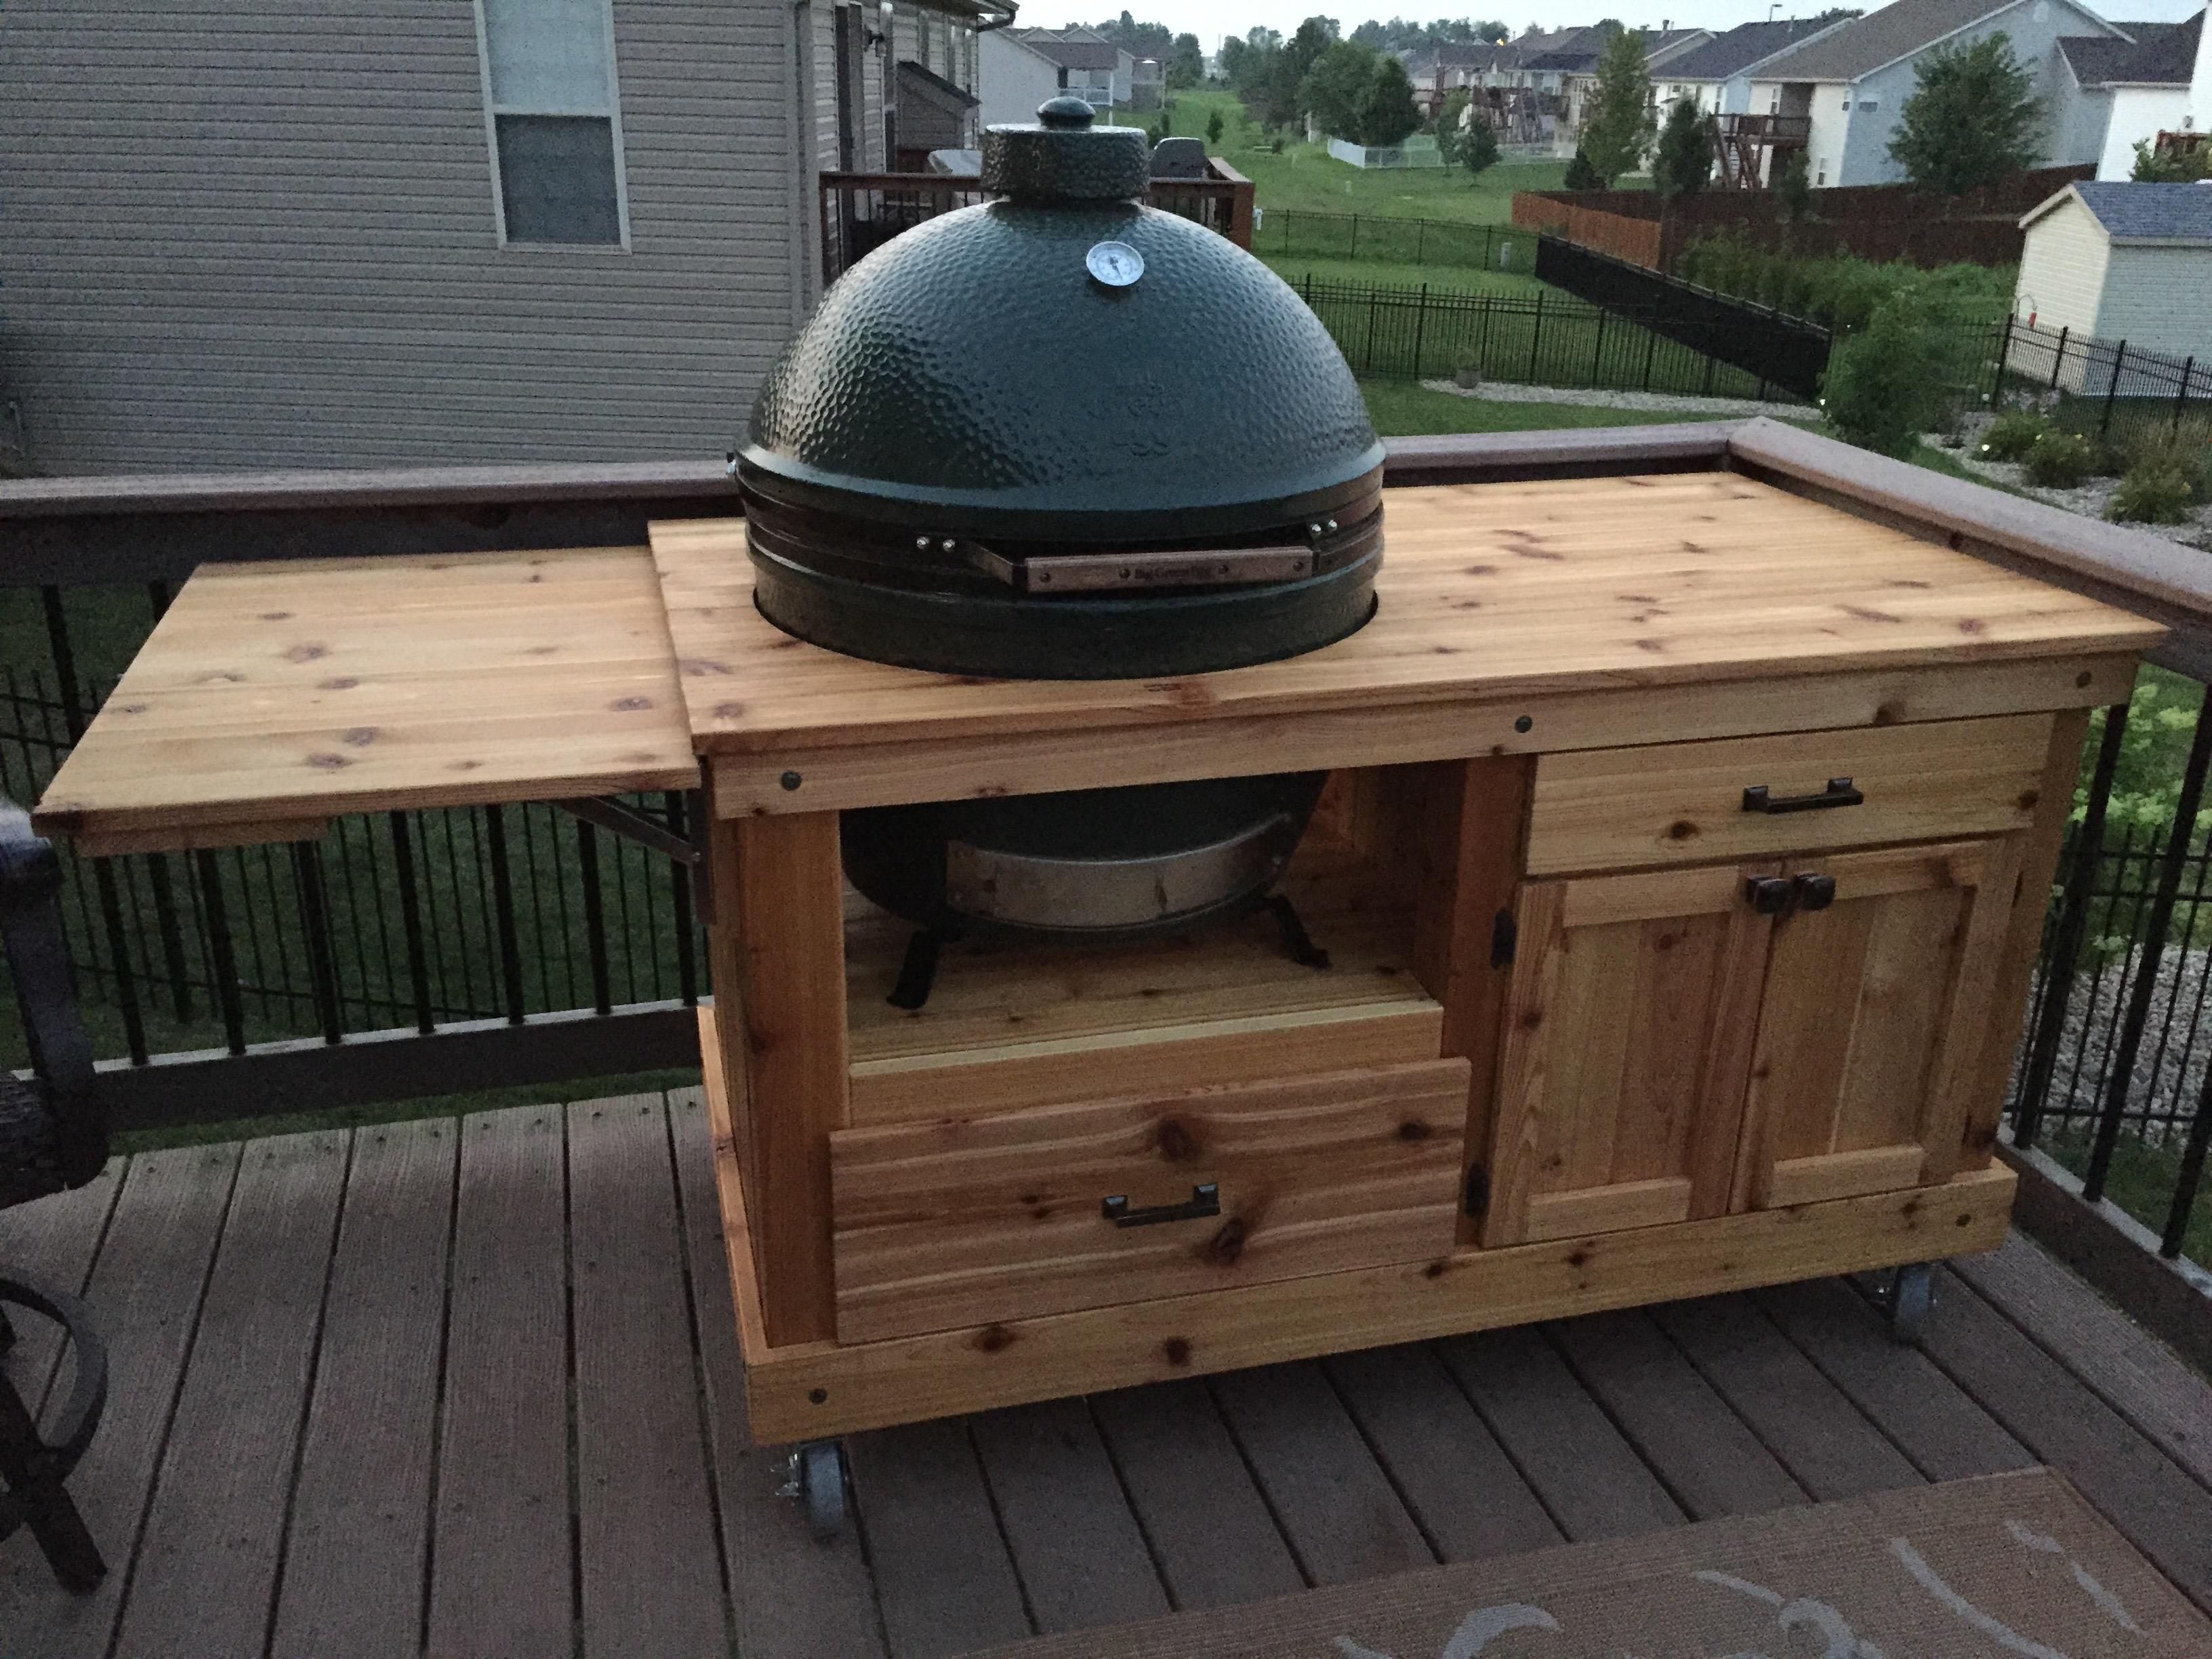 My Latest XL BGE Table (the Iu0027ve Built)   Big Green Egg   EGGhead Forum    The Ultimate Cooking Experience.